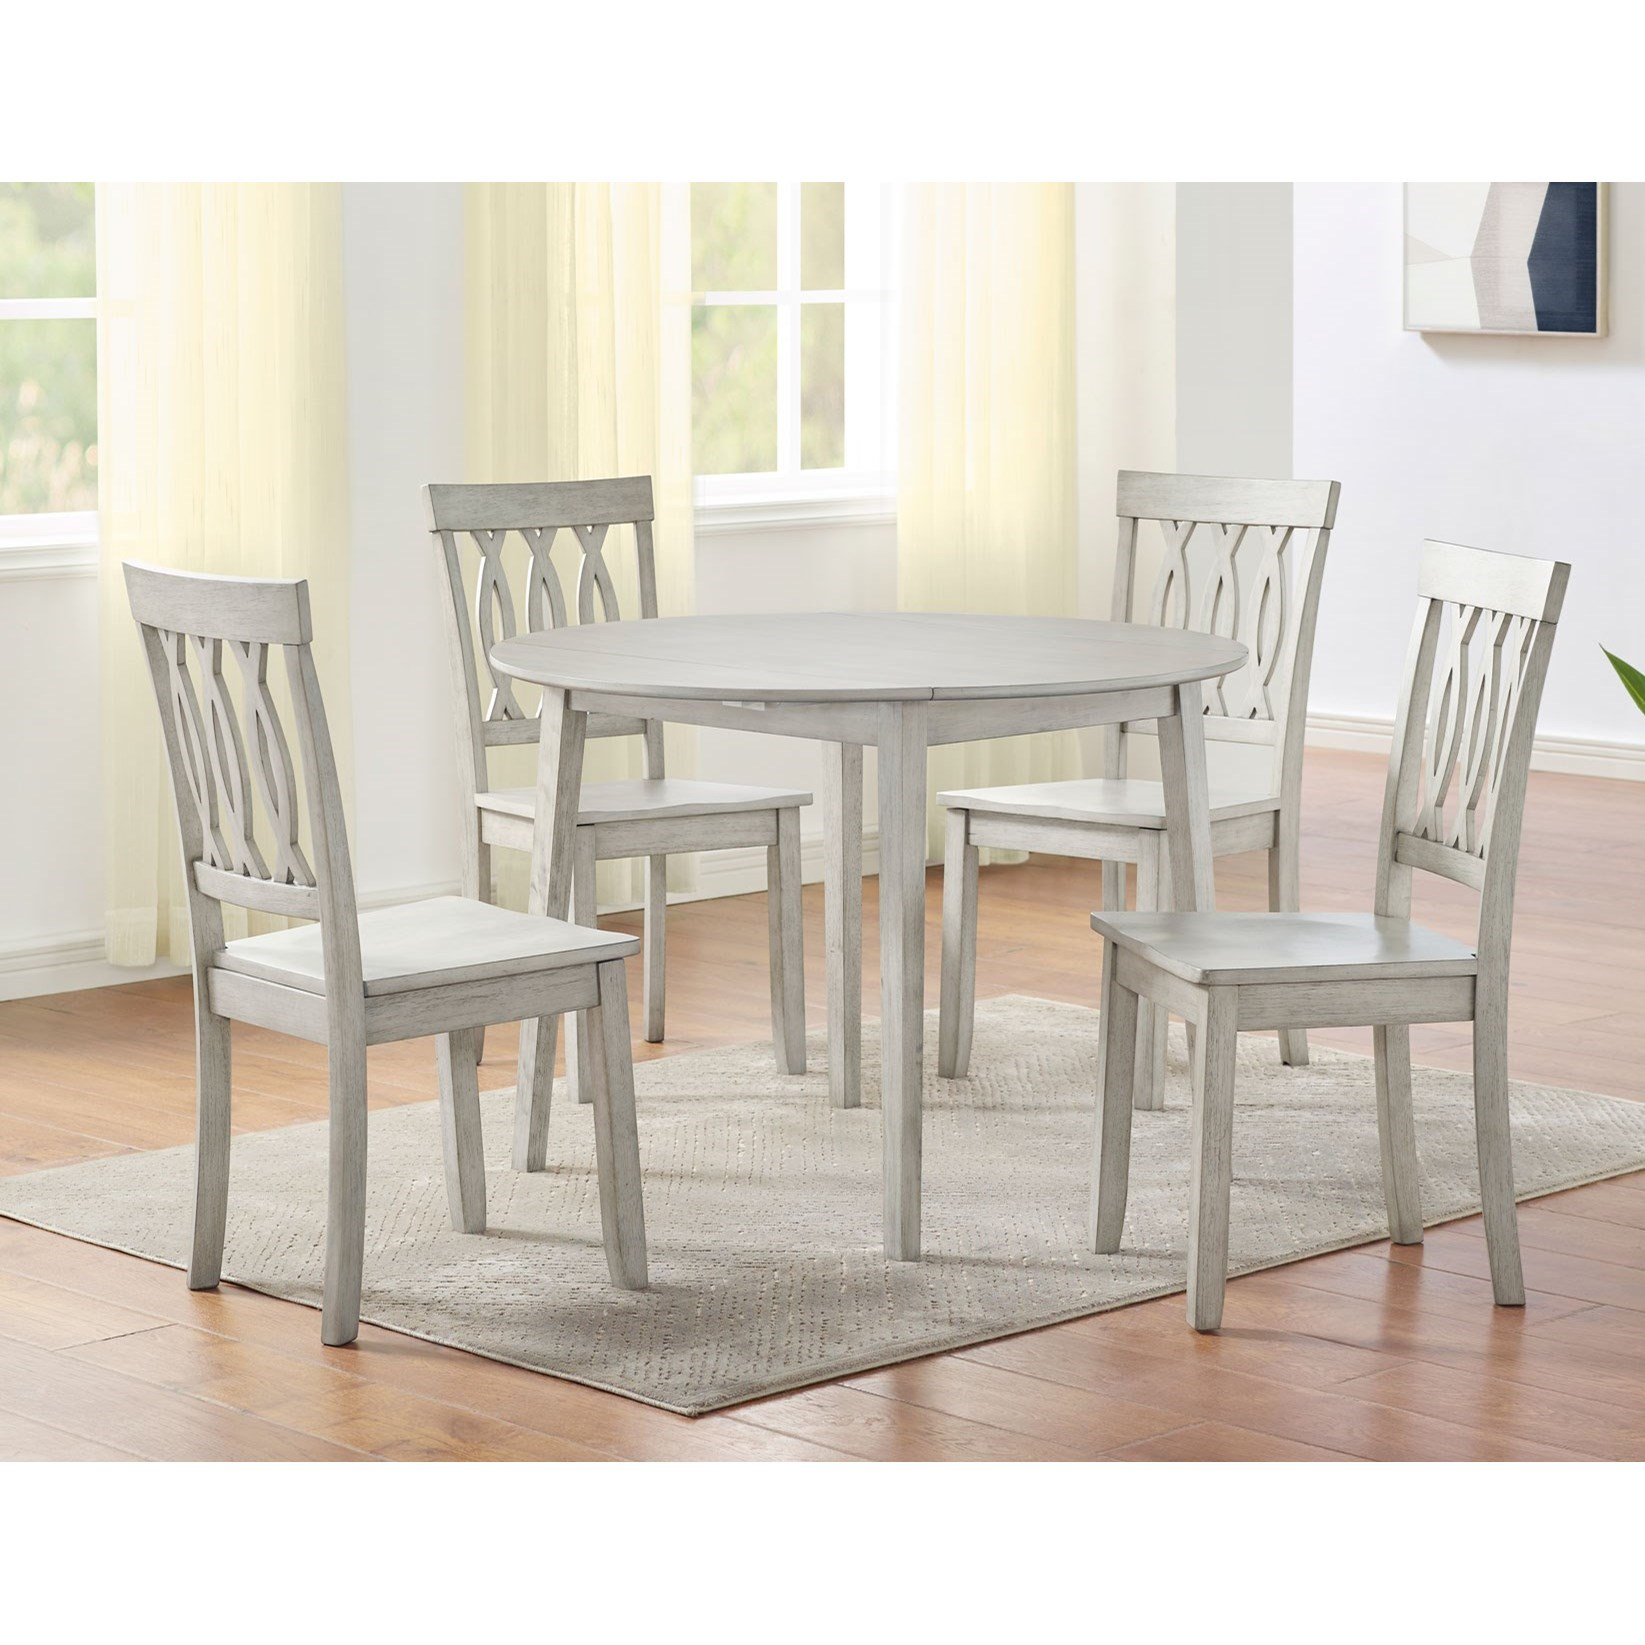 Silver Dining Table And Chairs, Steve Silver Naples 5 Piece Drop Leaf Dining Set In Antiqued White Dunk Bright Furniture Dining 5 Piece Sets